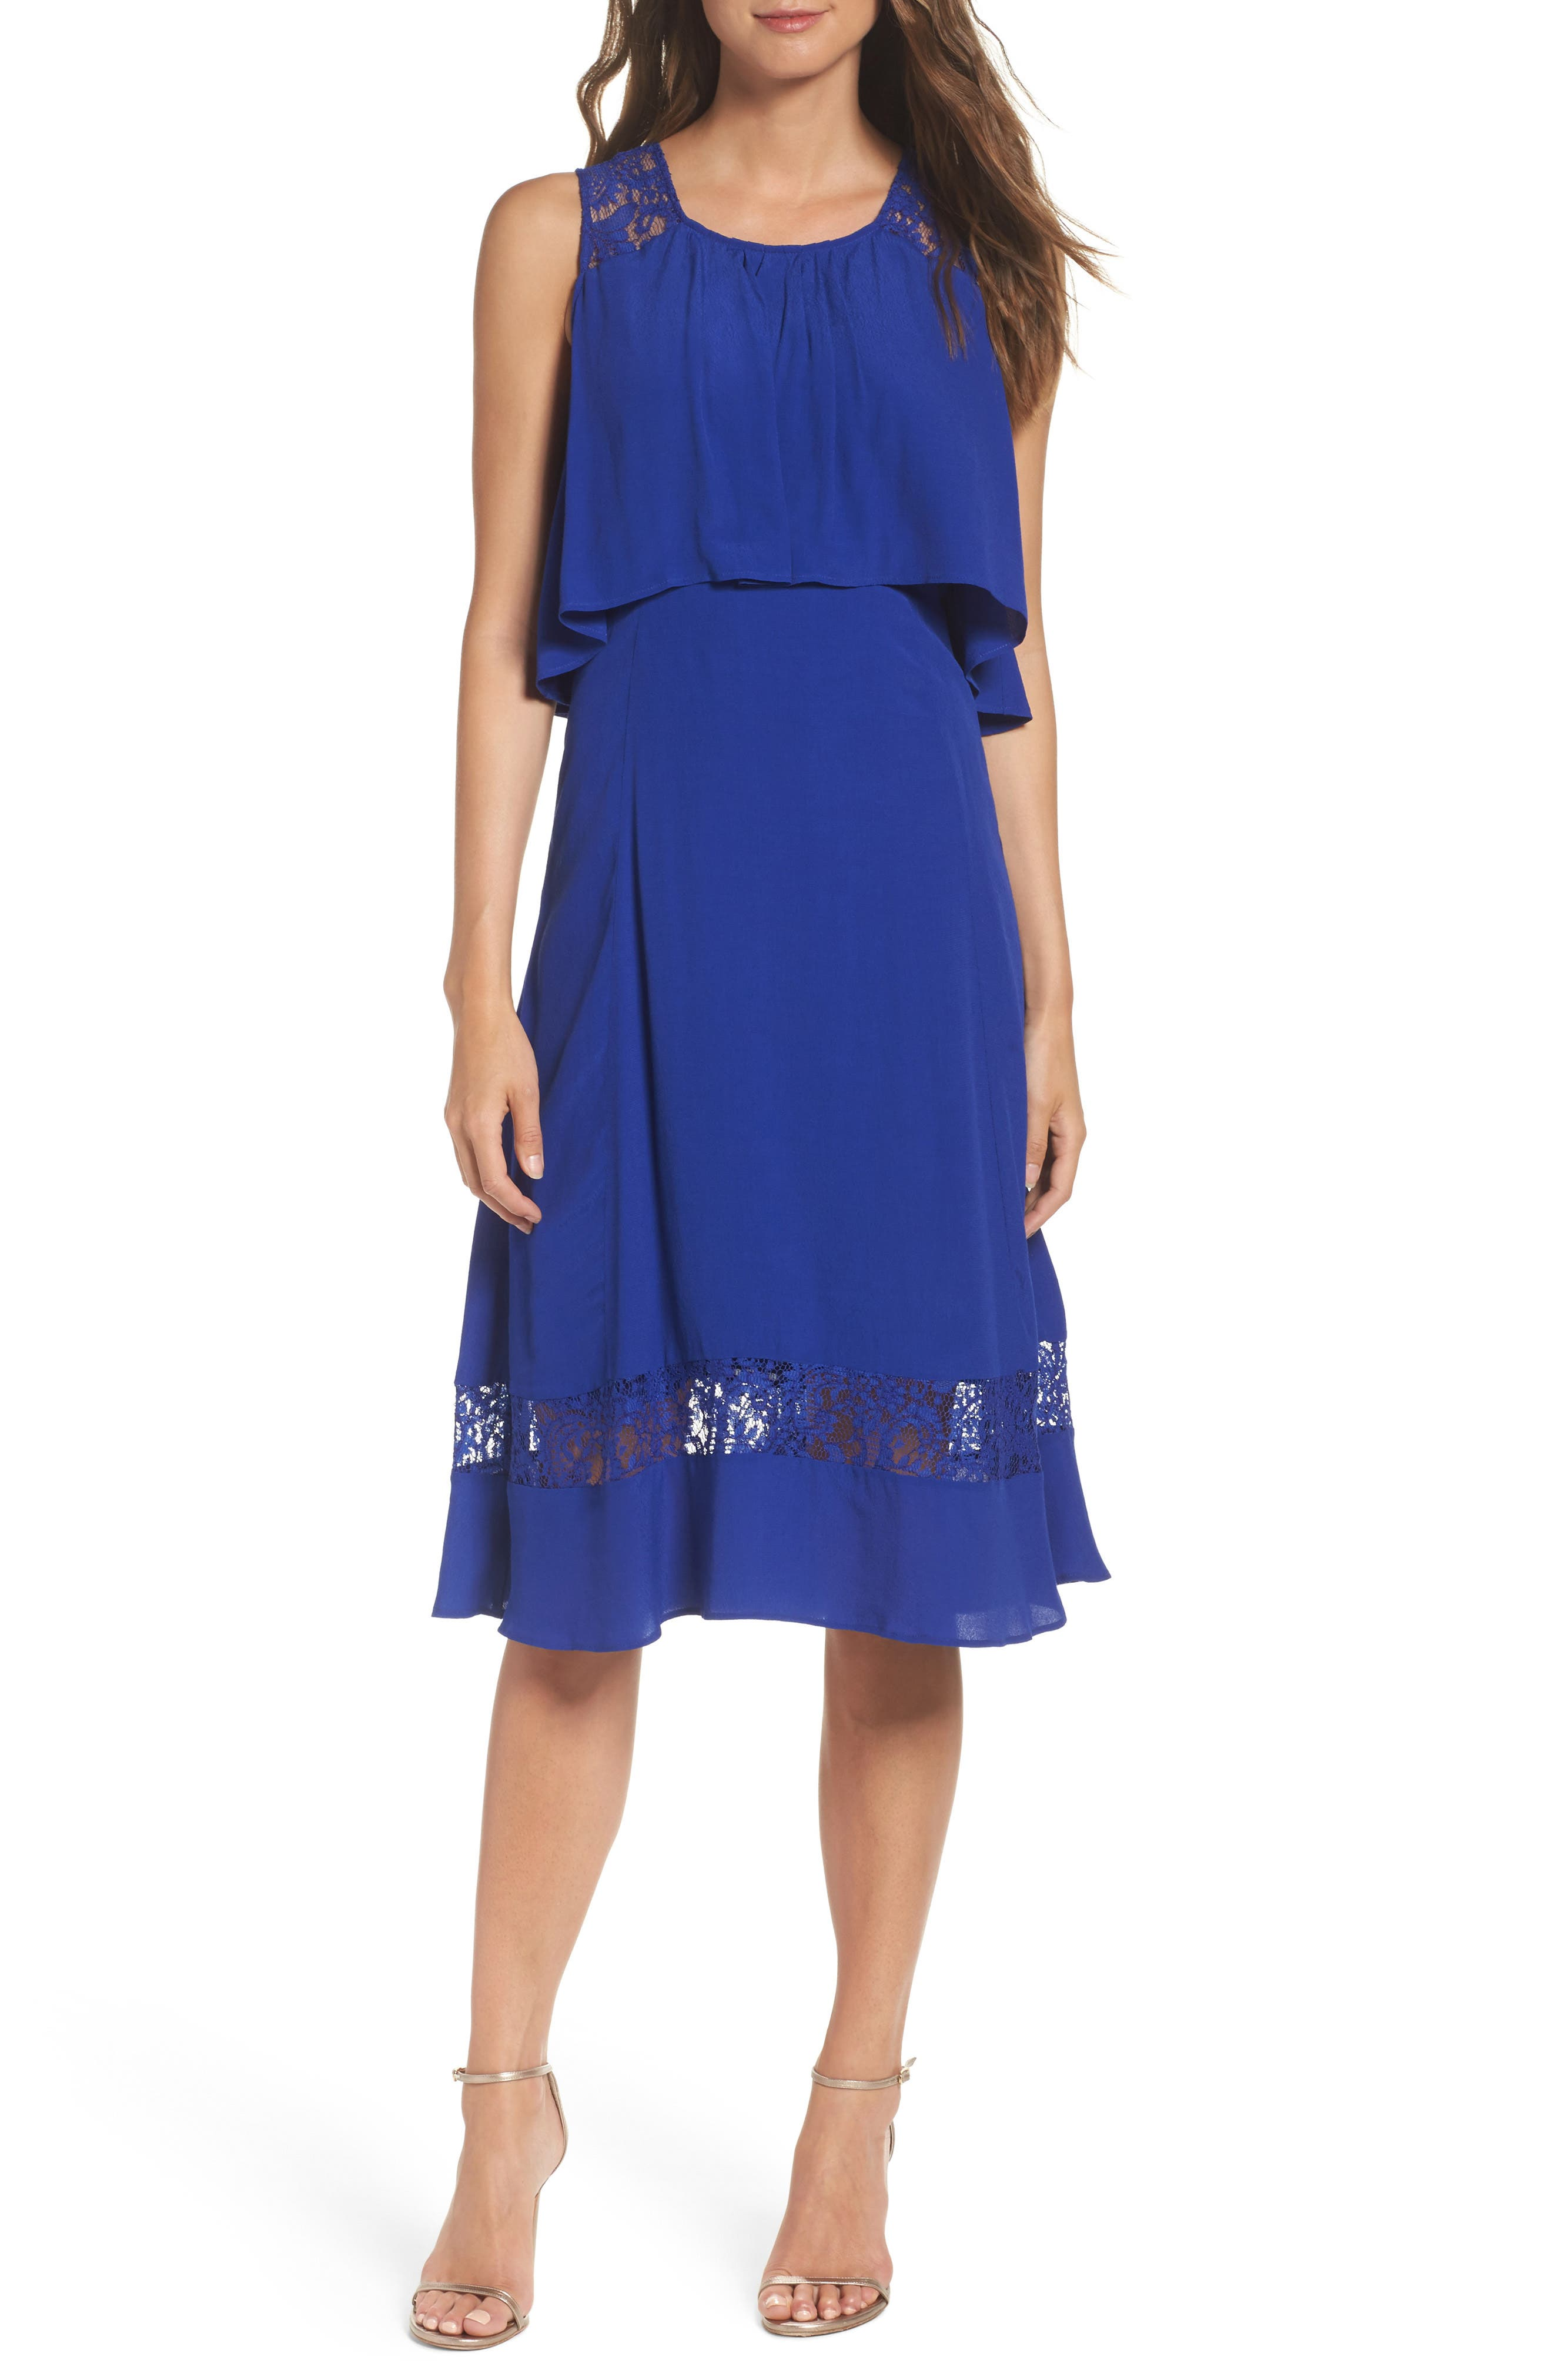 Alternate Image 1 Selected - BB Dakota Erin Popover Dress